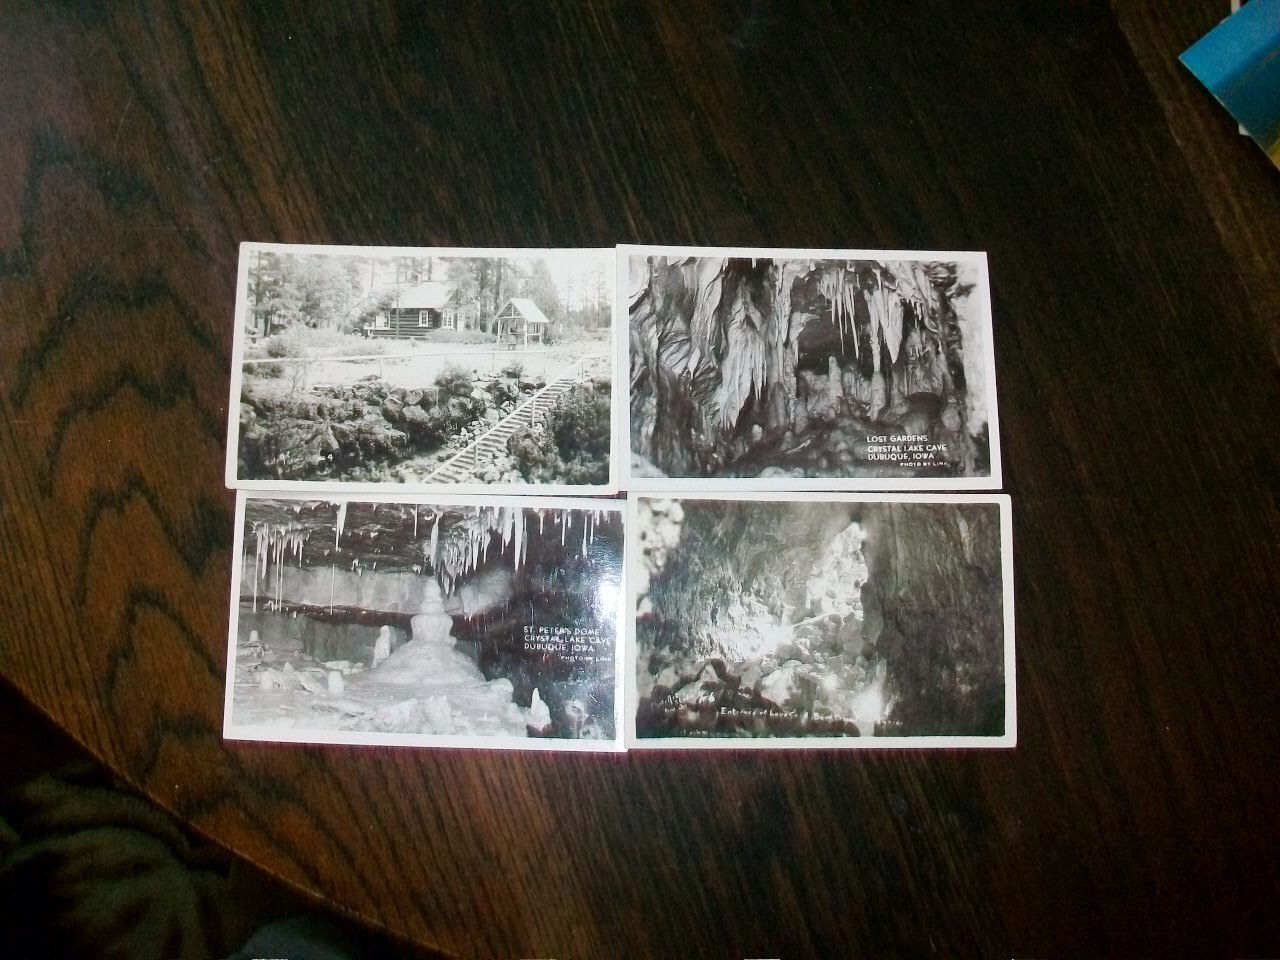 4 Vintage Photograph Postcards Crystal Lake Cave Dubuque, Iowa RPPC 1940s by RedRiverAntiques on Etsy https://www.etsy.com/listing/123574411/4-vintage-photograph-postcards-crystal